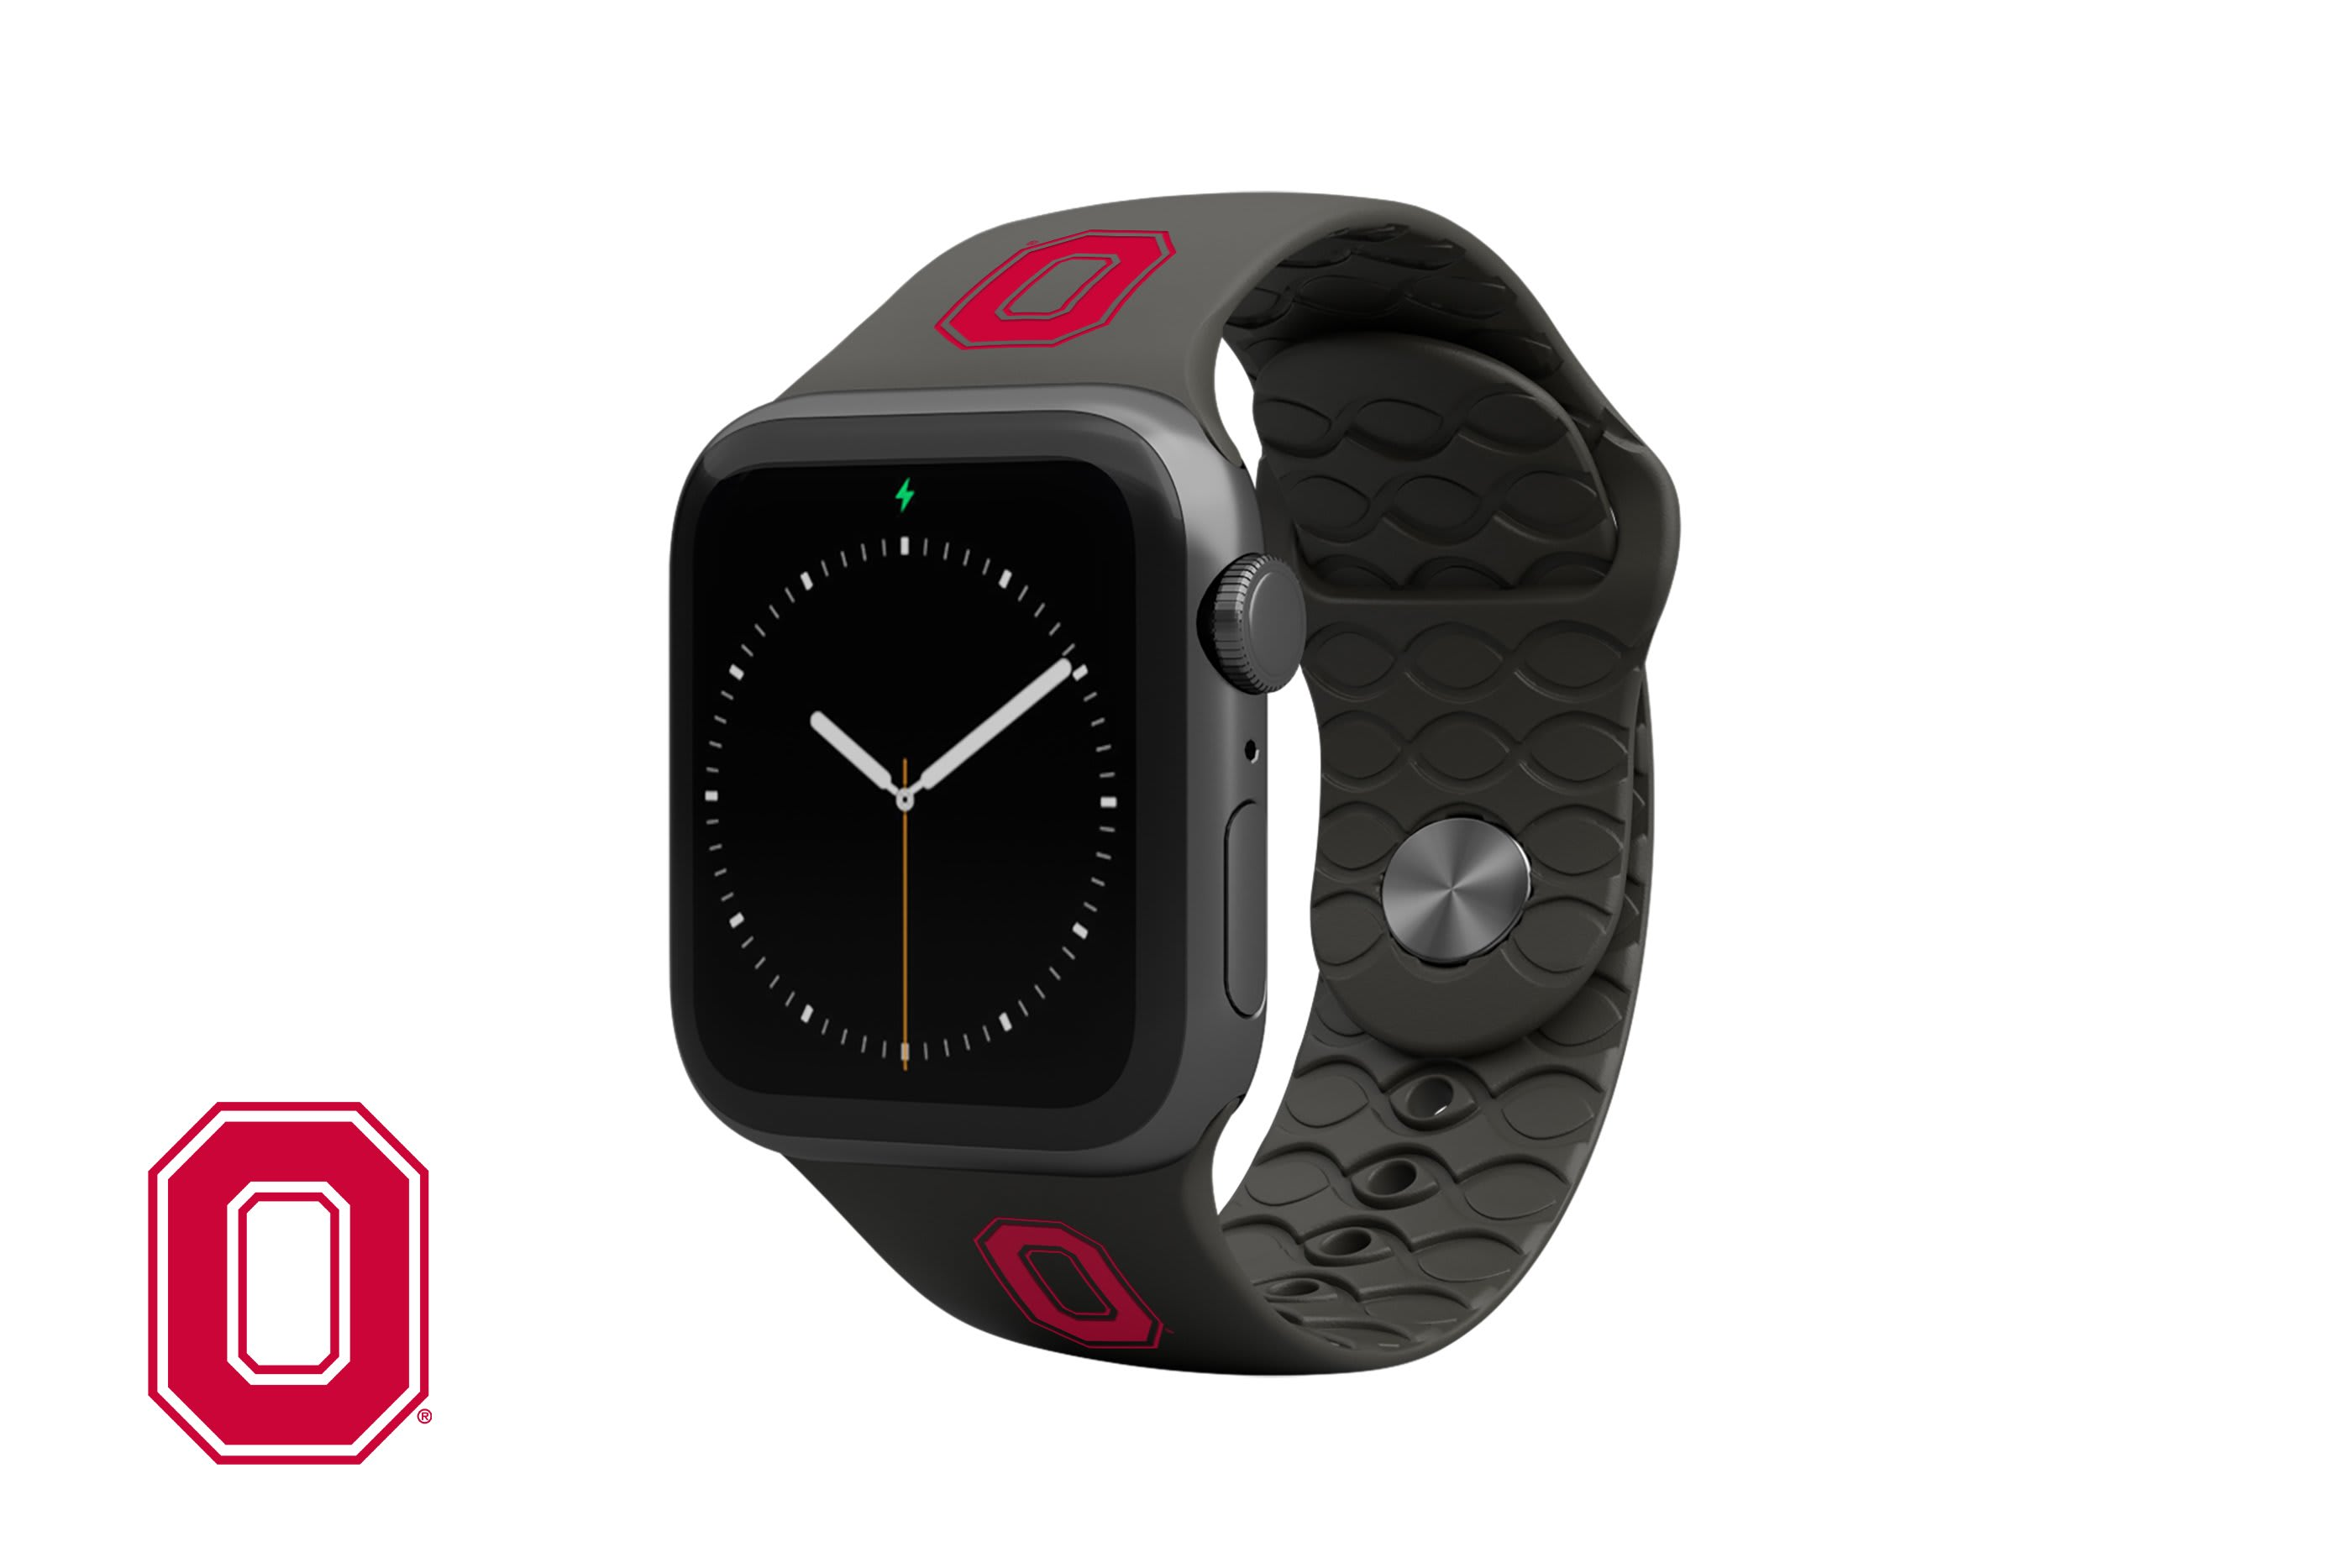 College Ohio State Black Apple Watch Band with gray hardware viewed top down